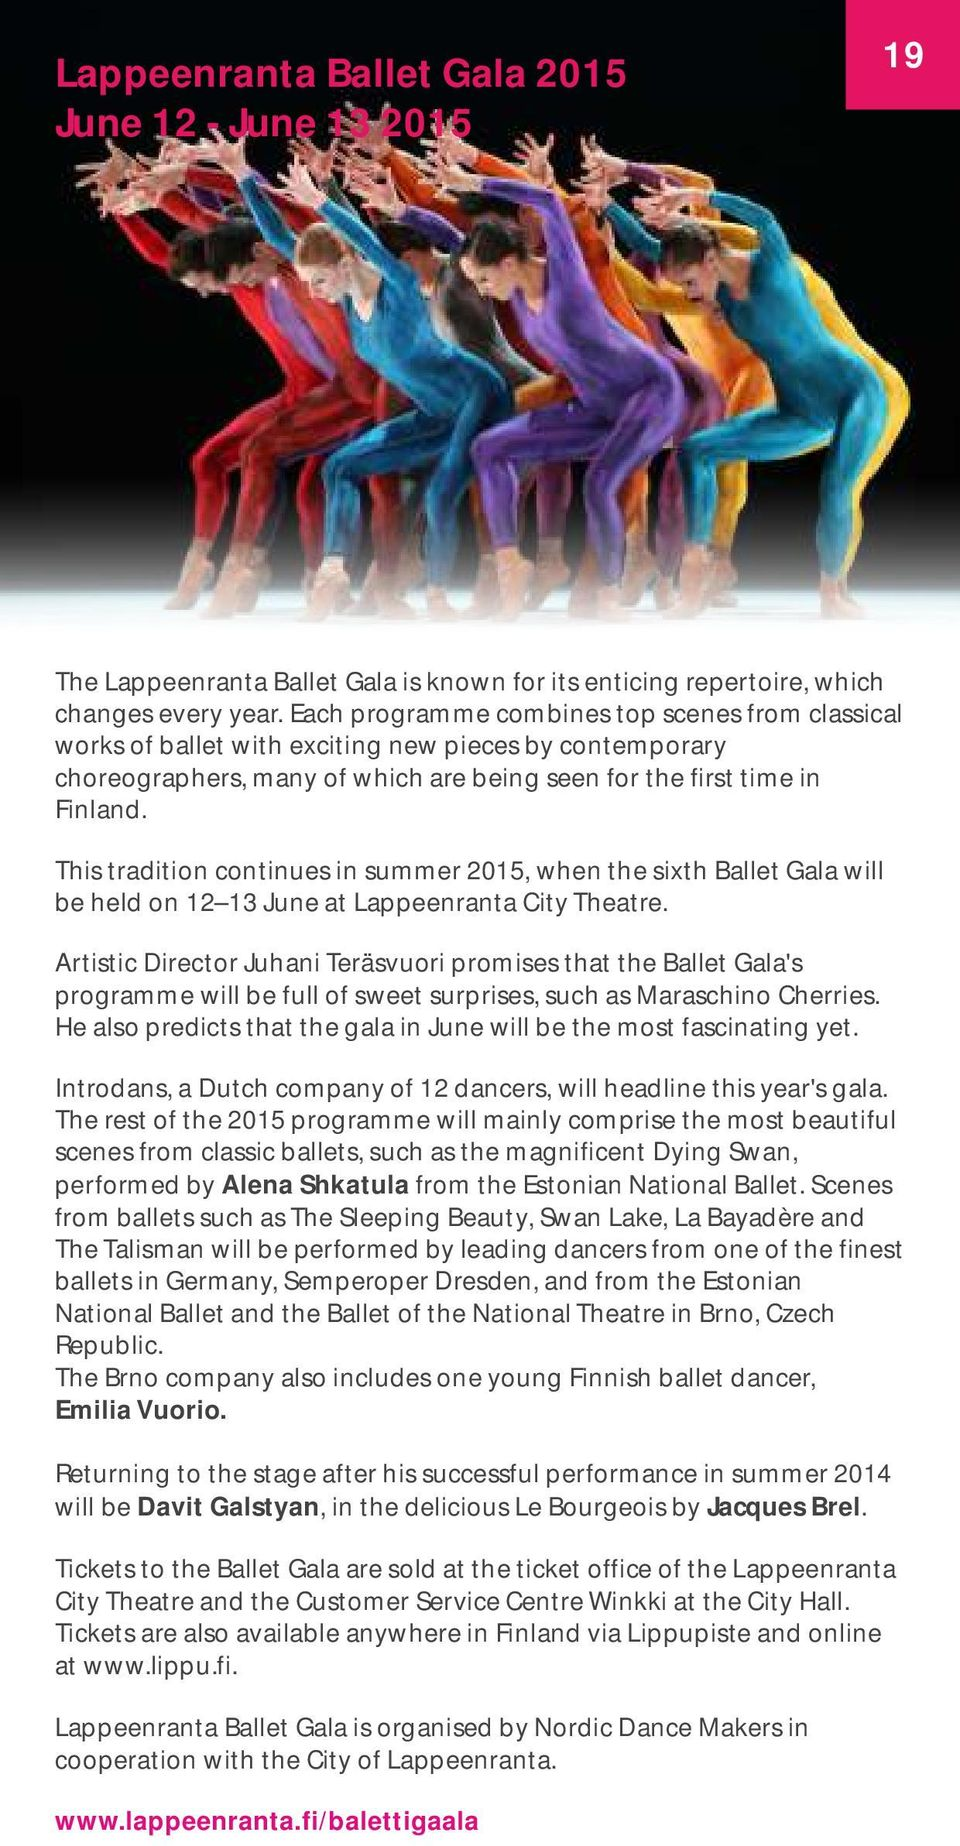 This tradition continues in summer 2015, when the sixth Ballet Gala will be held on 12 13 June at Lappeenranta City Theatre.